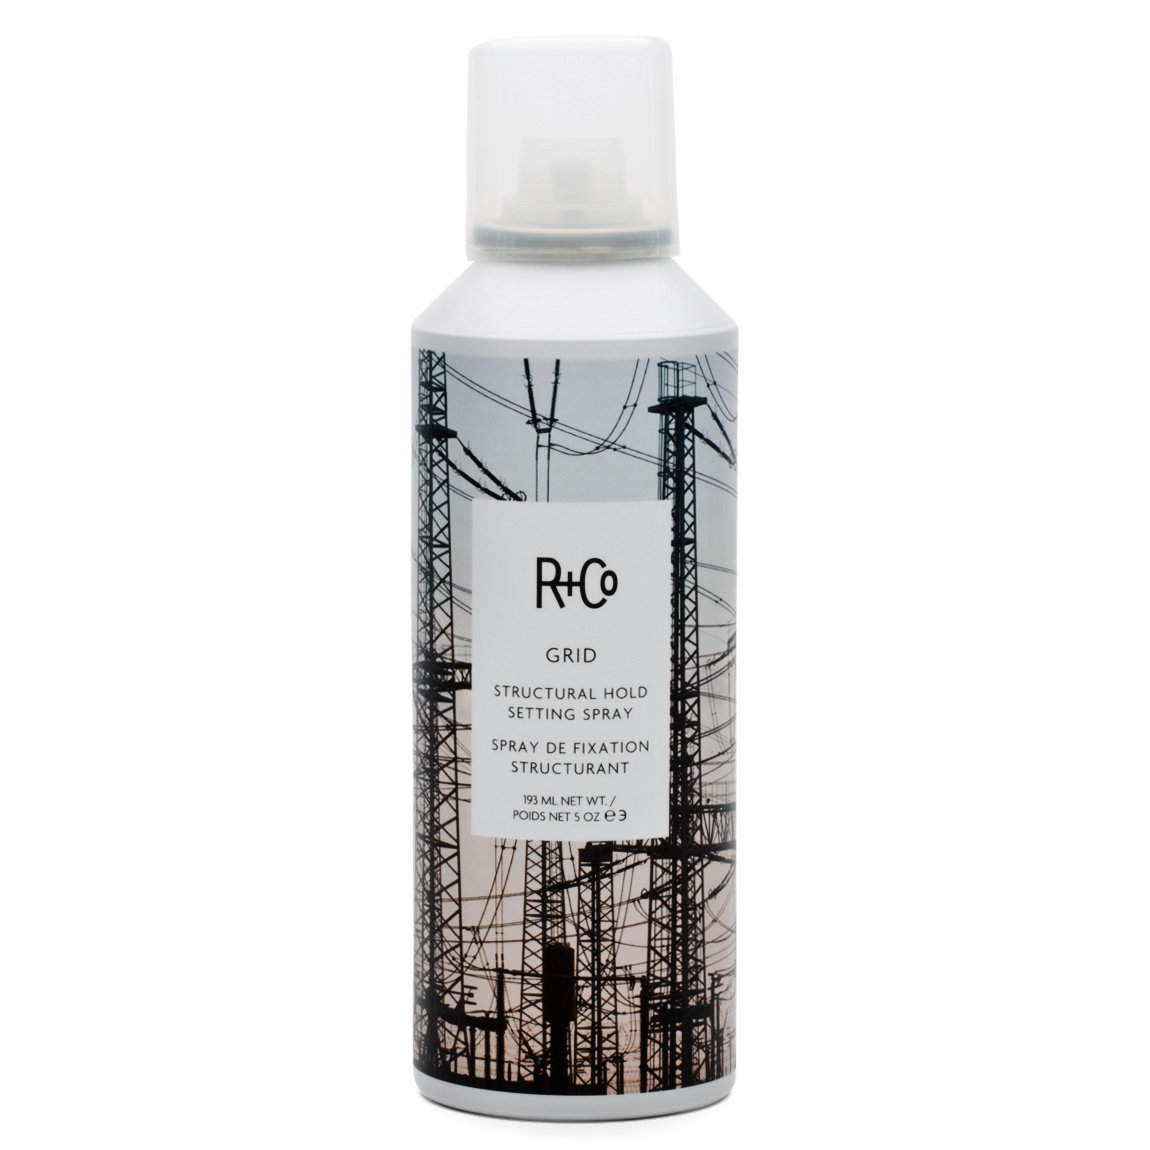 R+Co Grid Structural Hold Setting Spray alternative view 1 - product swatch.